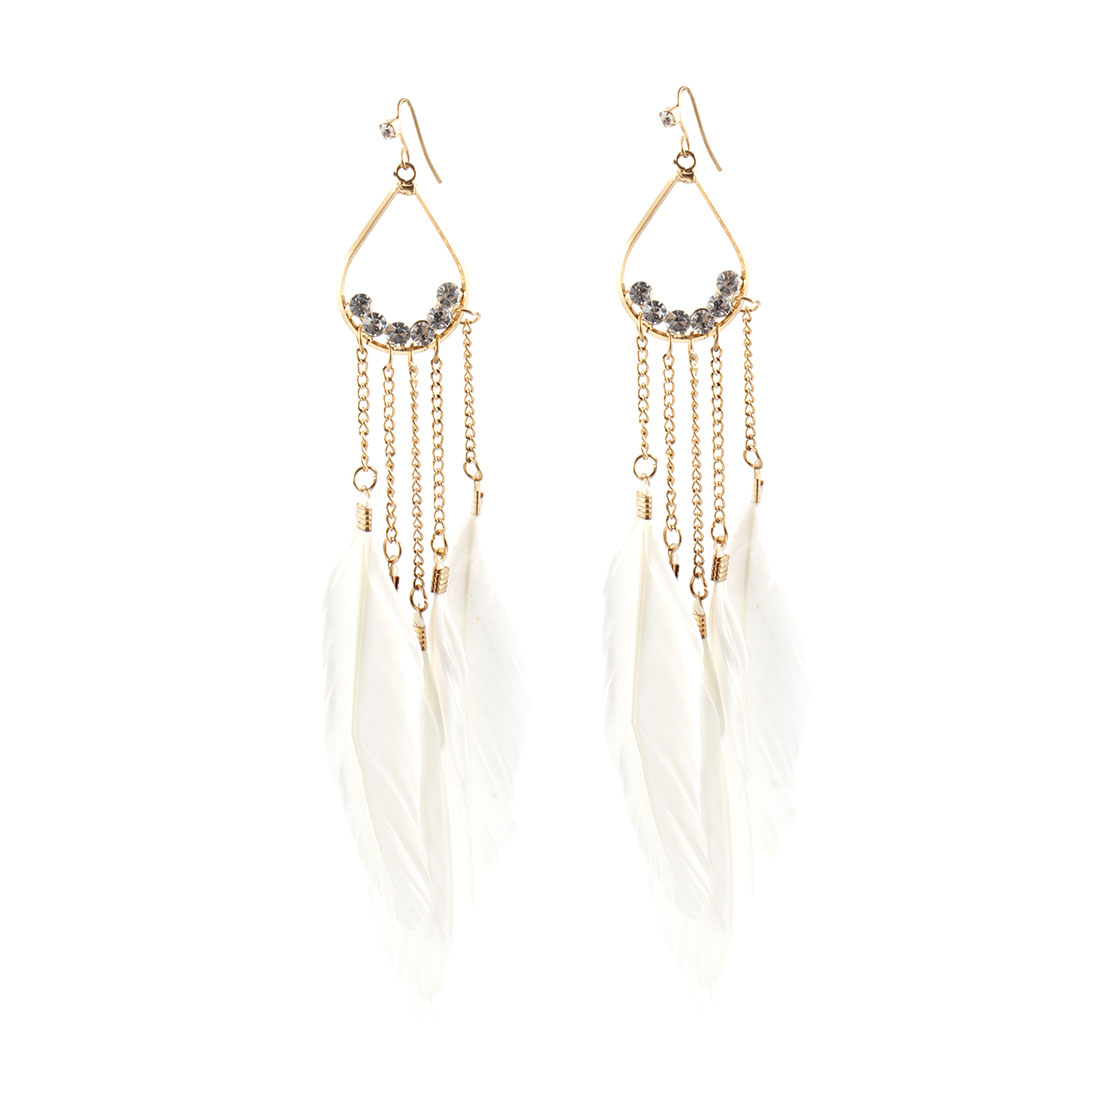 White Feather Faux Crystal Gold Tone Chain Dangling Hook Earrings for Lady